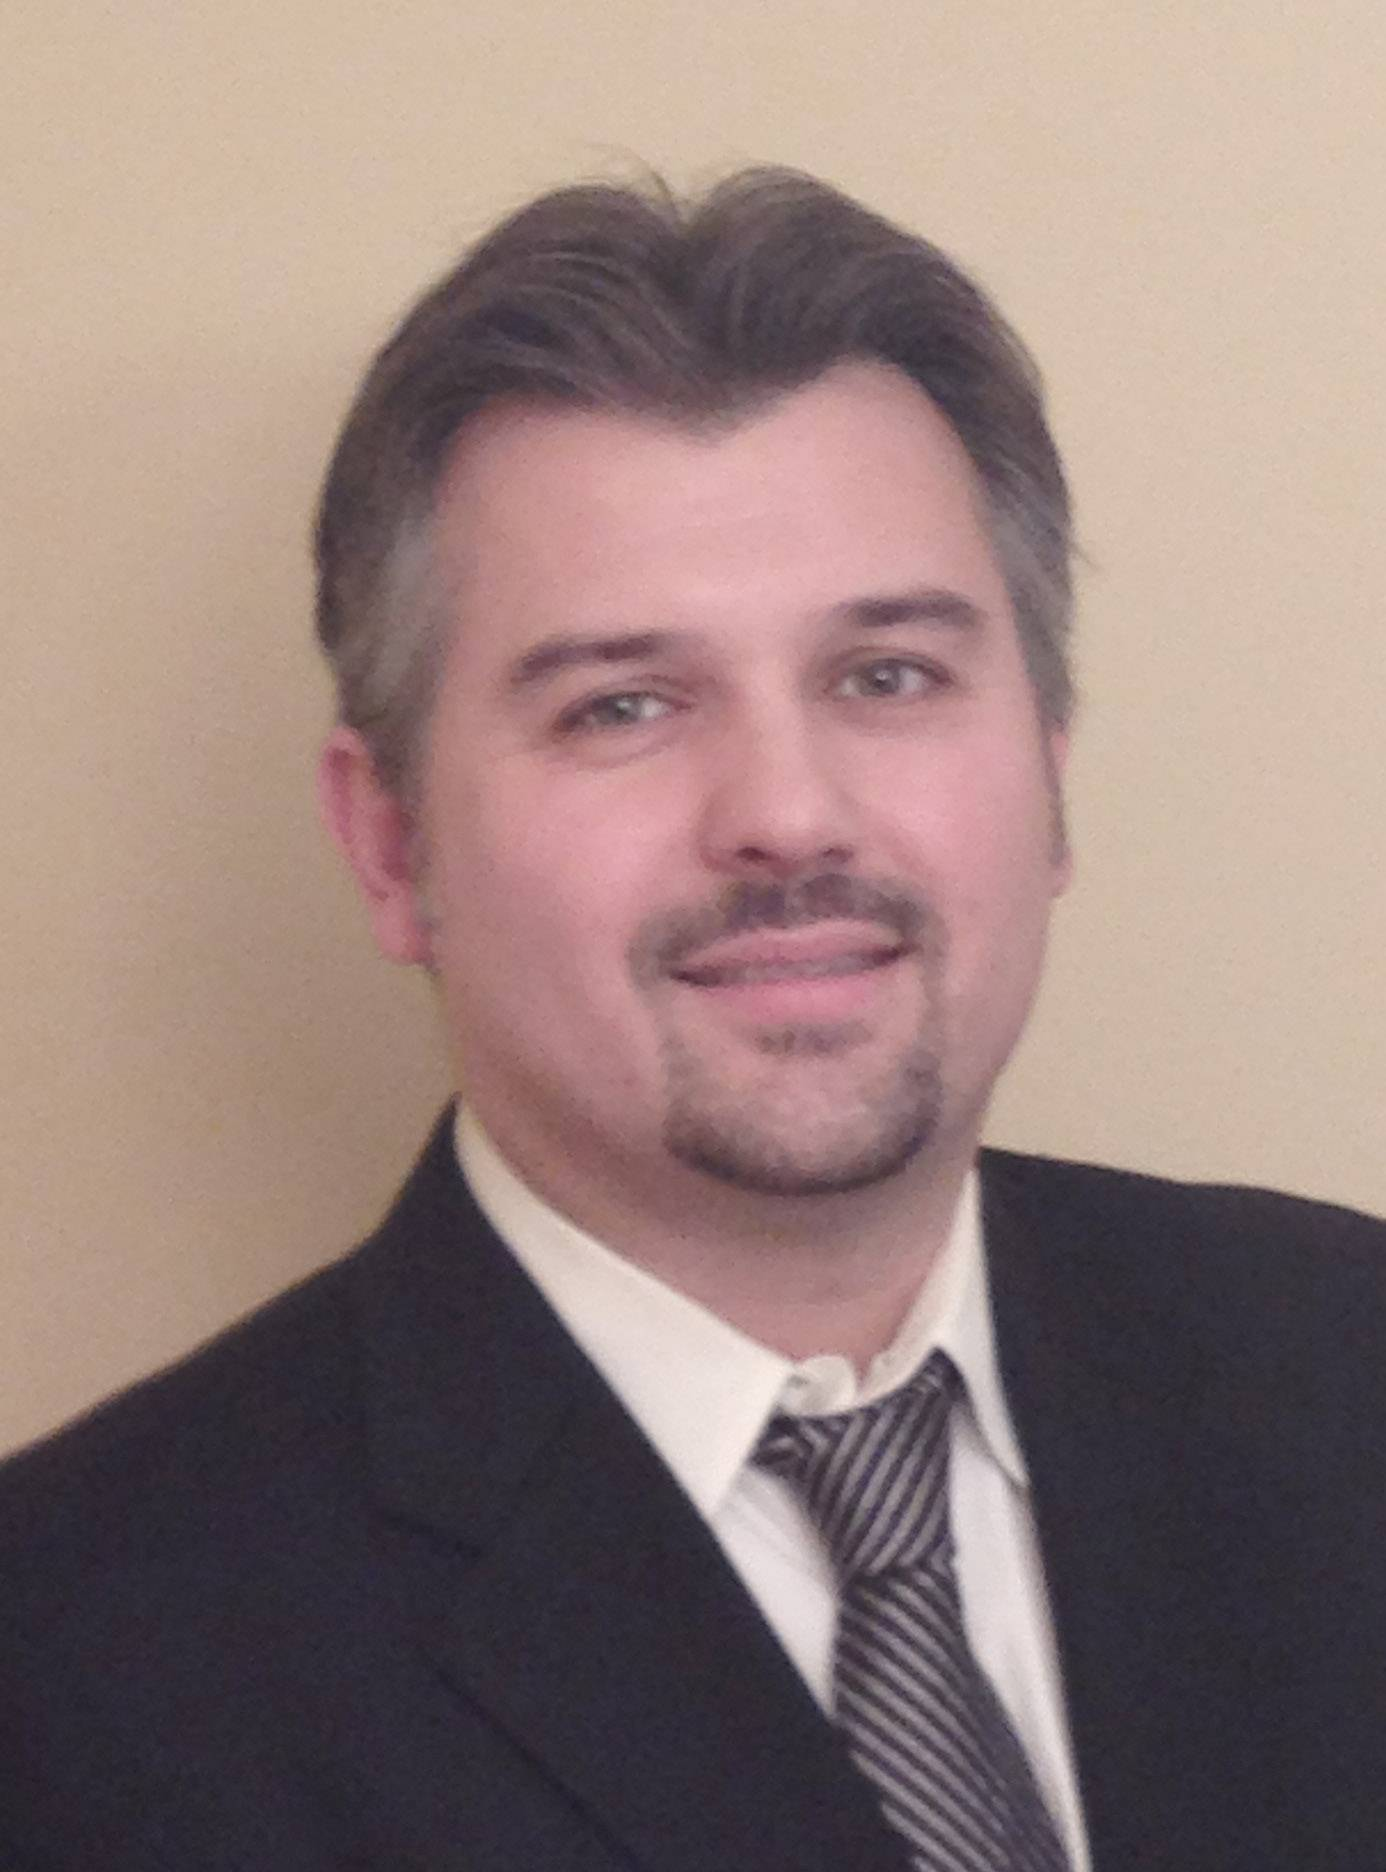 Stefan Stevic, running for Wood Dale City Council Ward 3 (4-year Term)